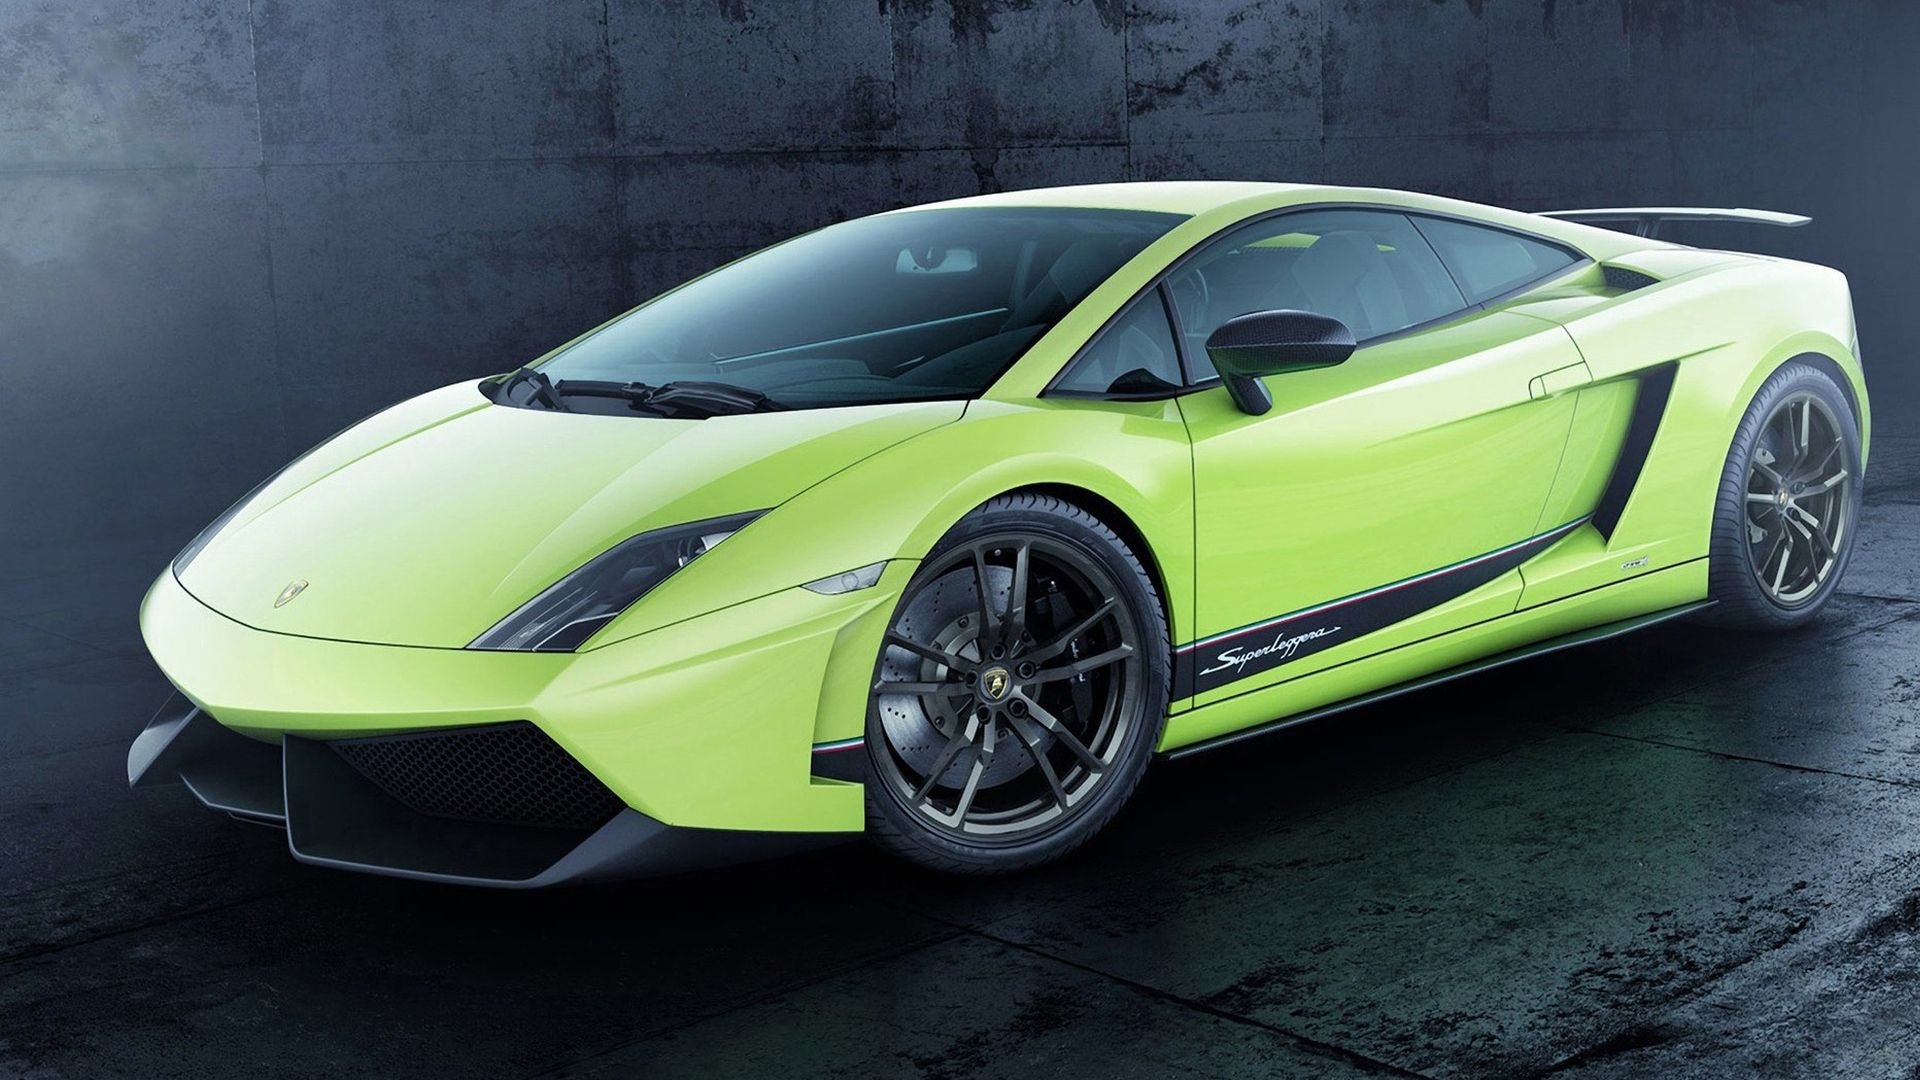 2013_lamborghini_gallardo_lp_570_4_superleggera-wallpaper-1920x1080.jpg